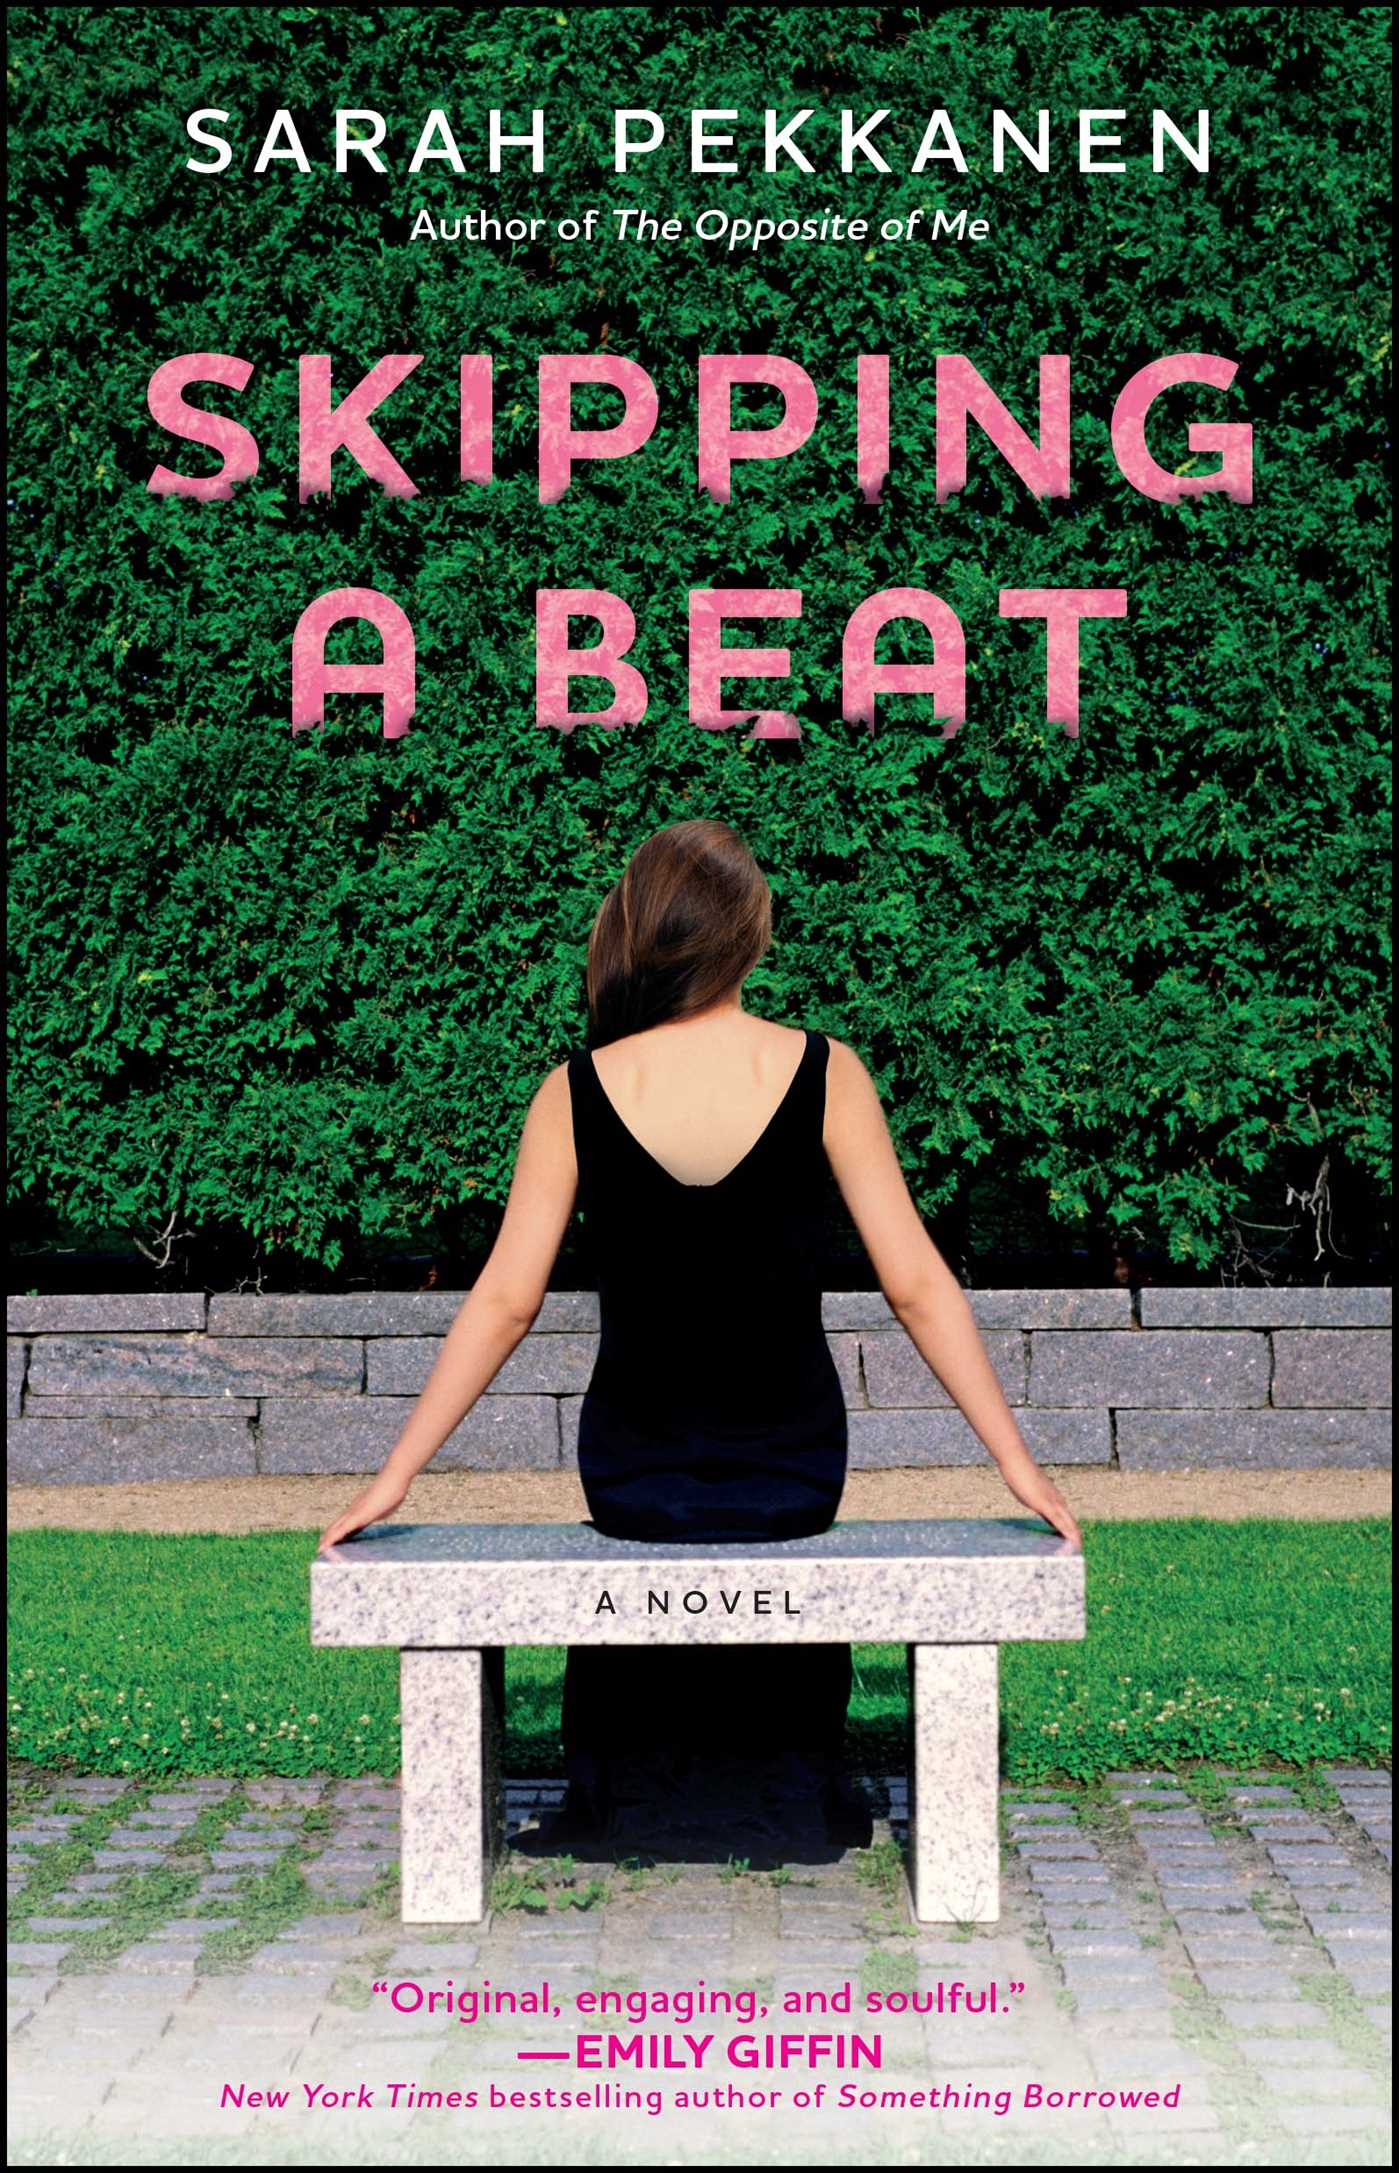 Skipping-a-beat-9781451609820_hr